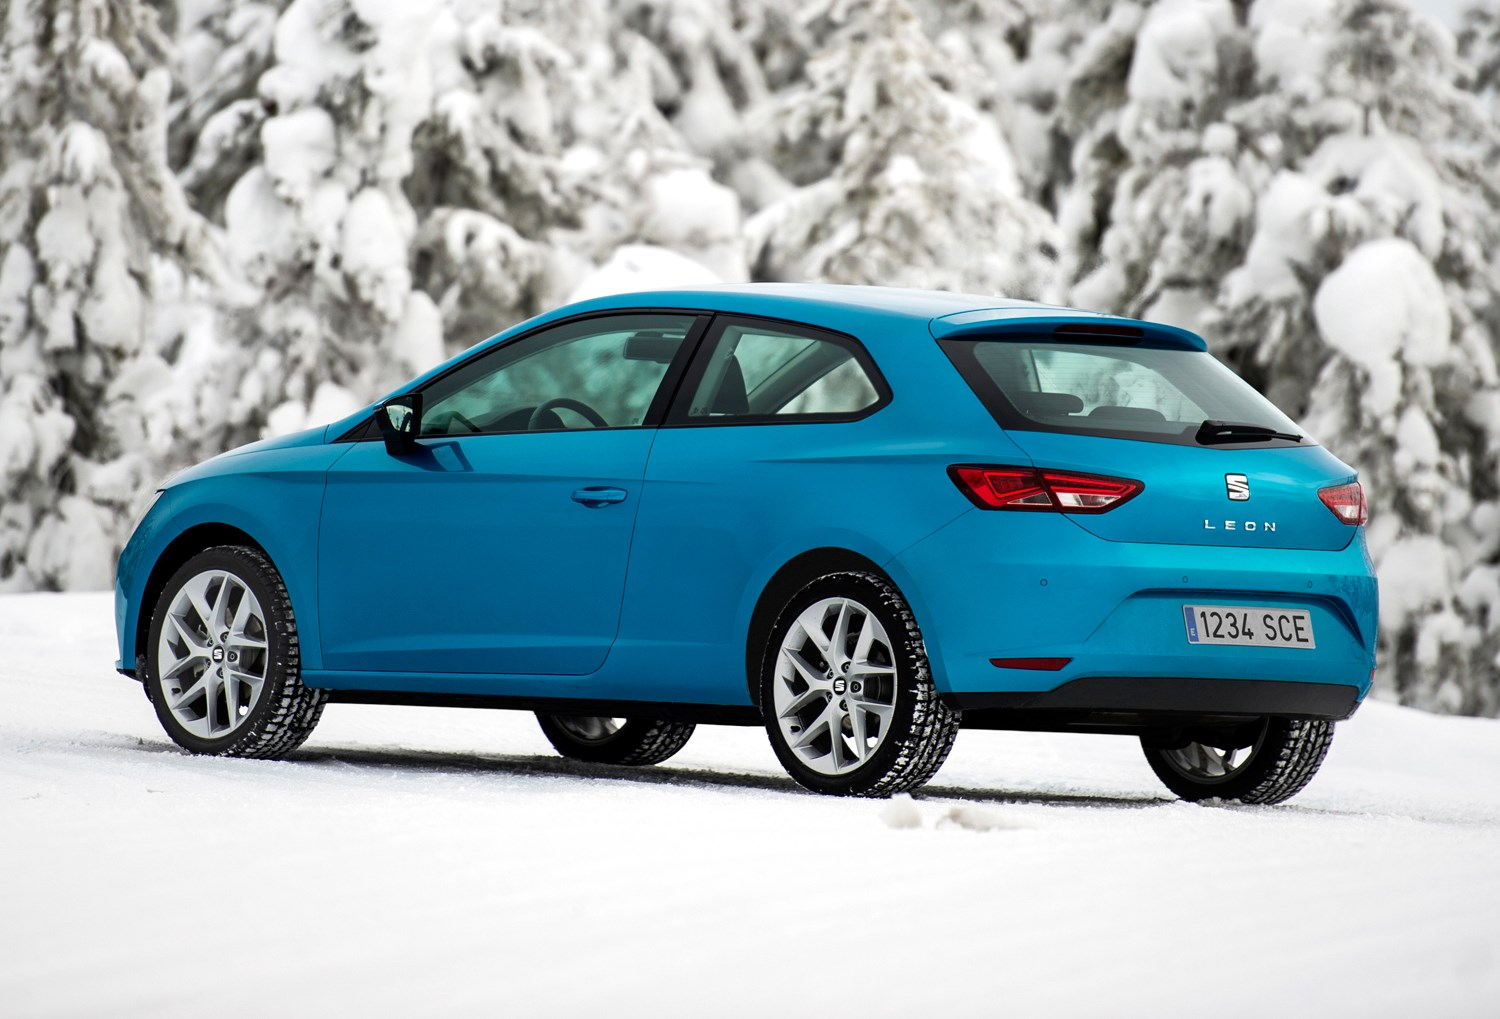 Used Seat Leon Sc 2013 2018 Review Parkers